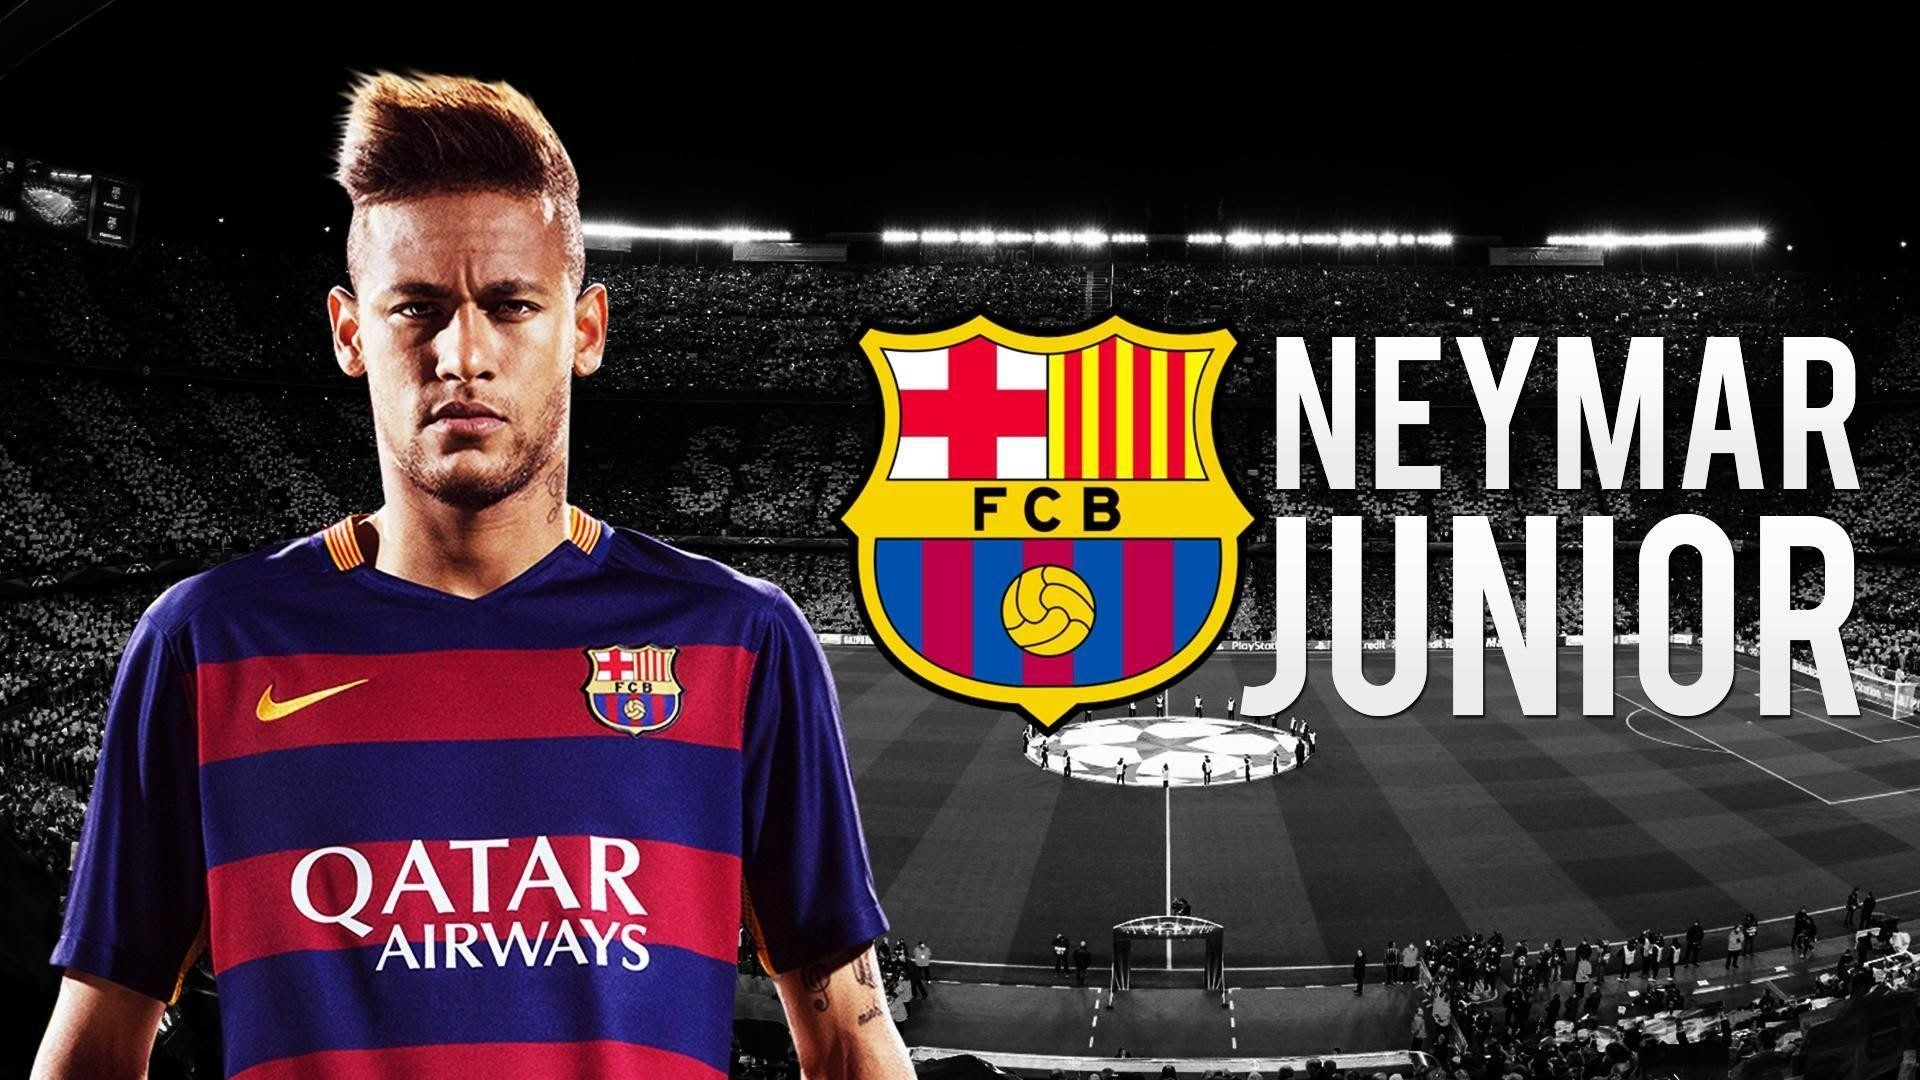 Neymar Jr Wallpaper 2018 HD 74 Pictures